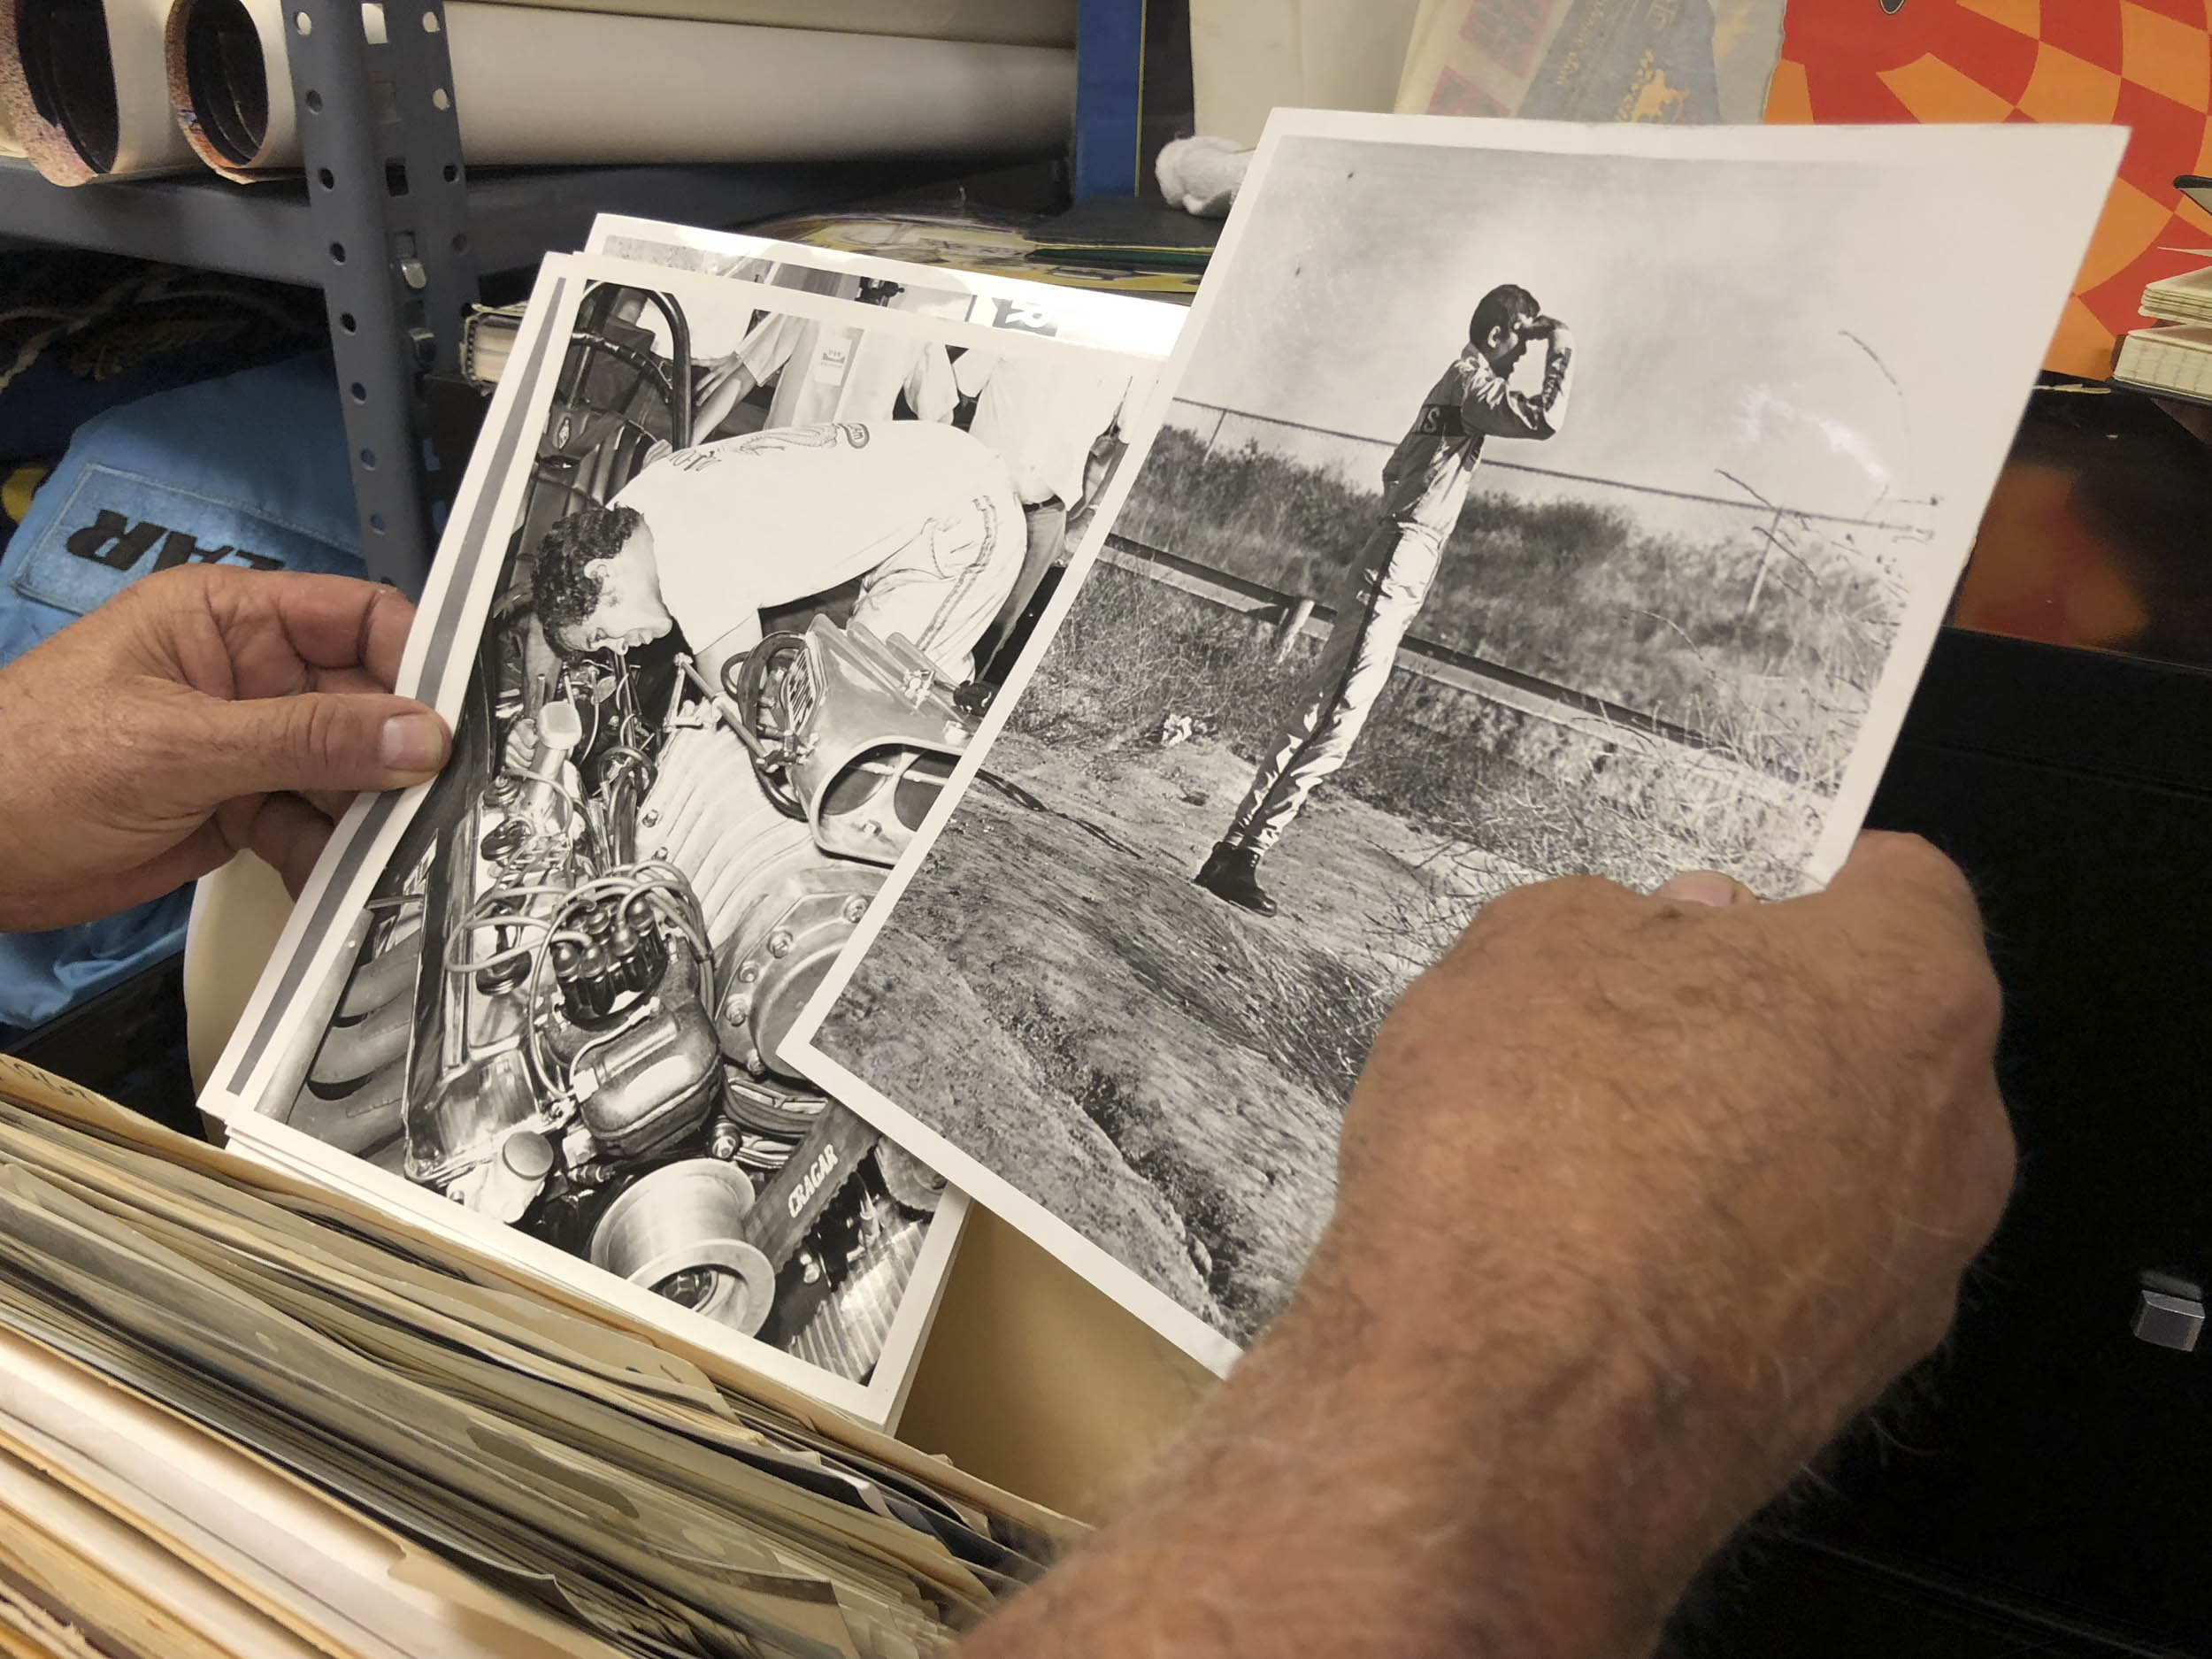 We got a glimpse into Prudhomme's personal collection for this story. He pulled out press clippings and family snapshots from more than 50 years and countless quartermiles.